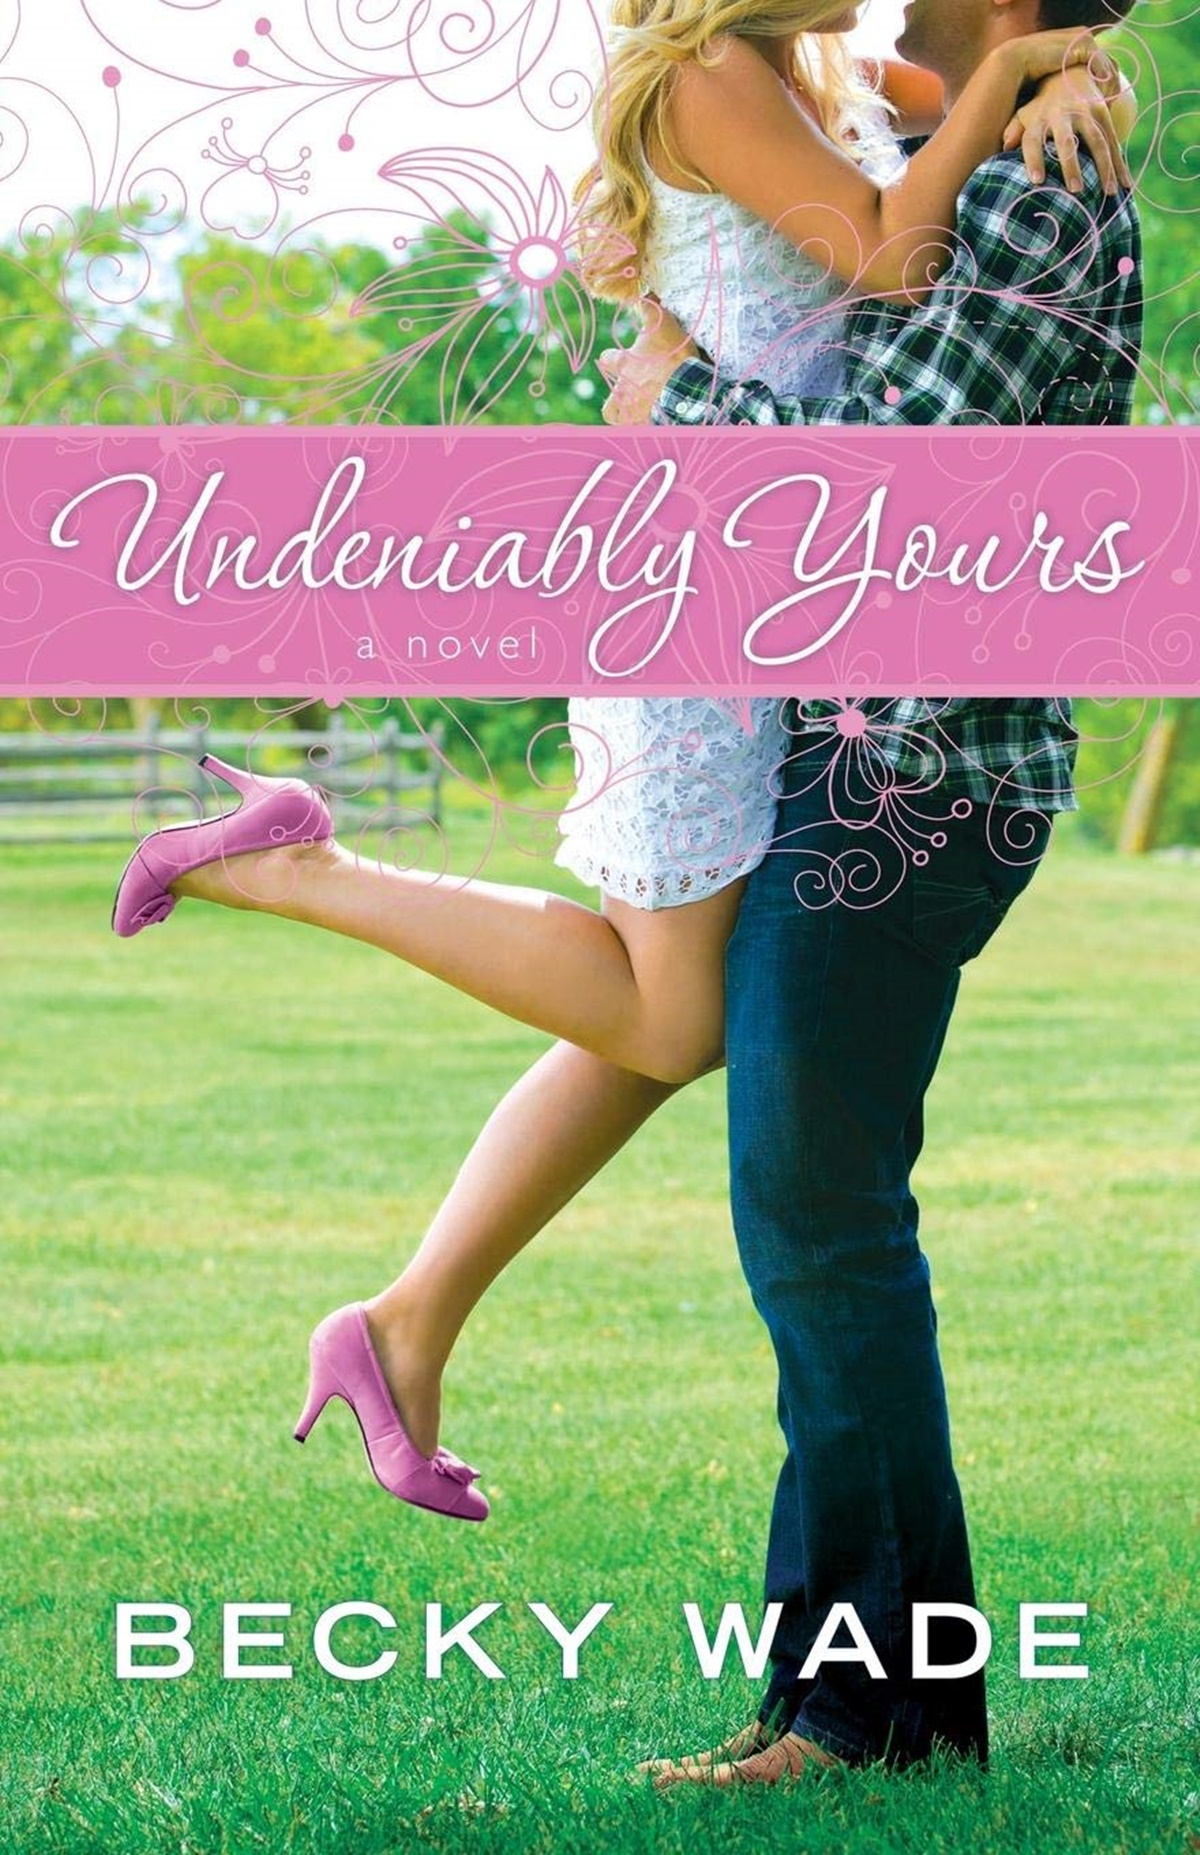 Clean Romance Novels, cover of Undeniably Yours by Becky Wade, books